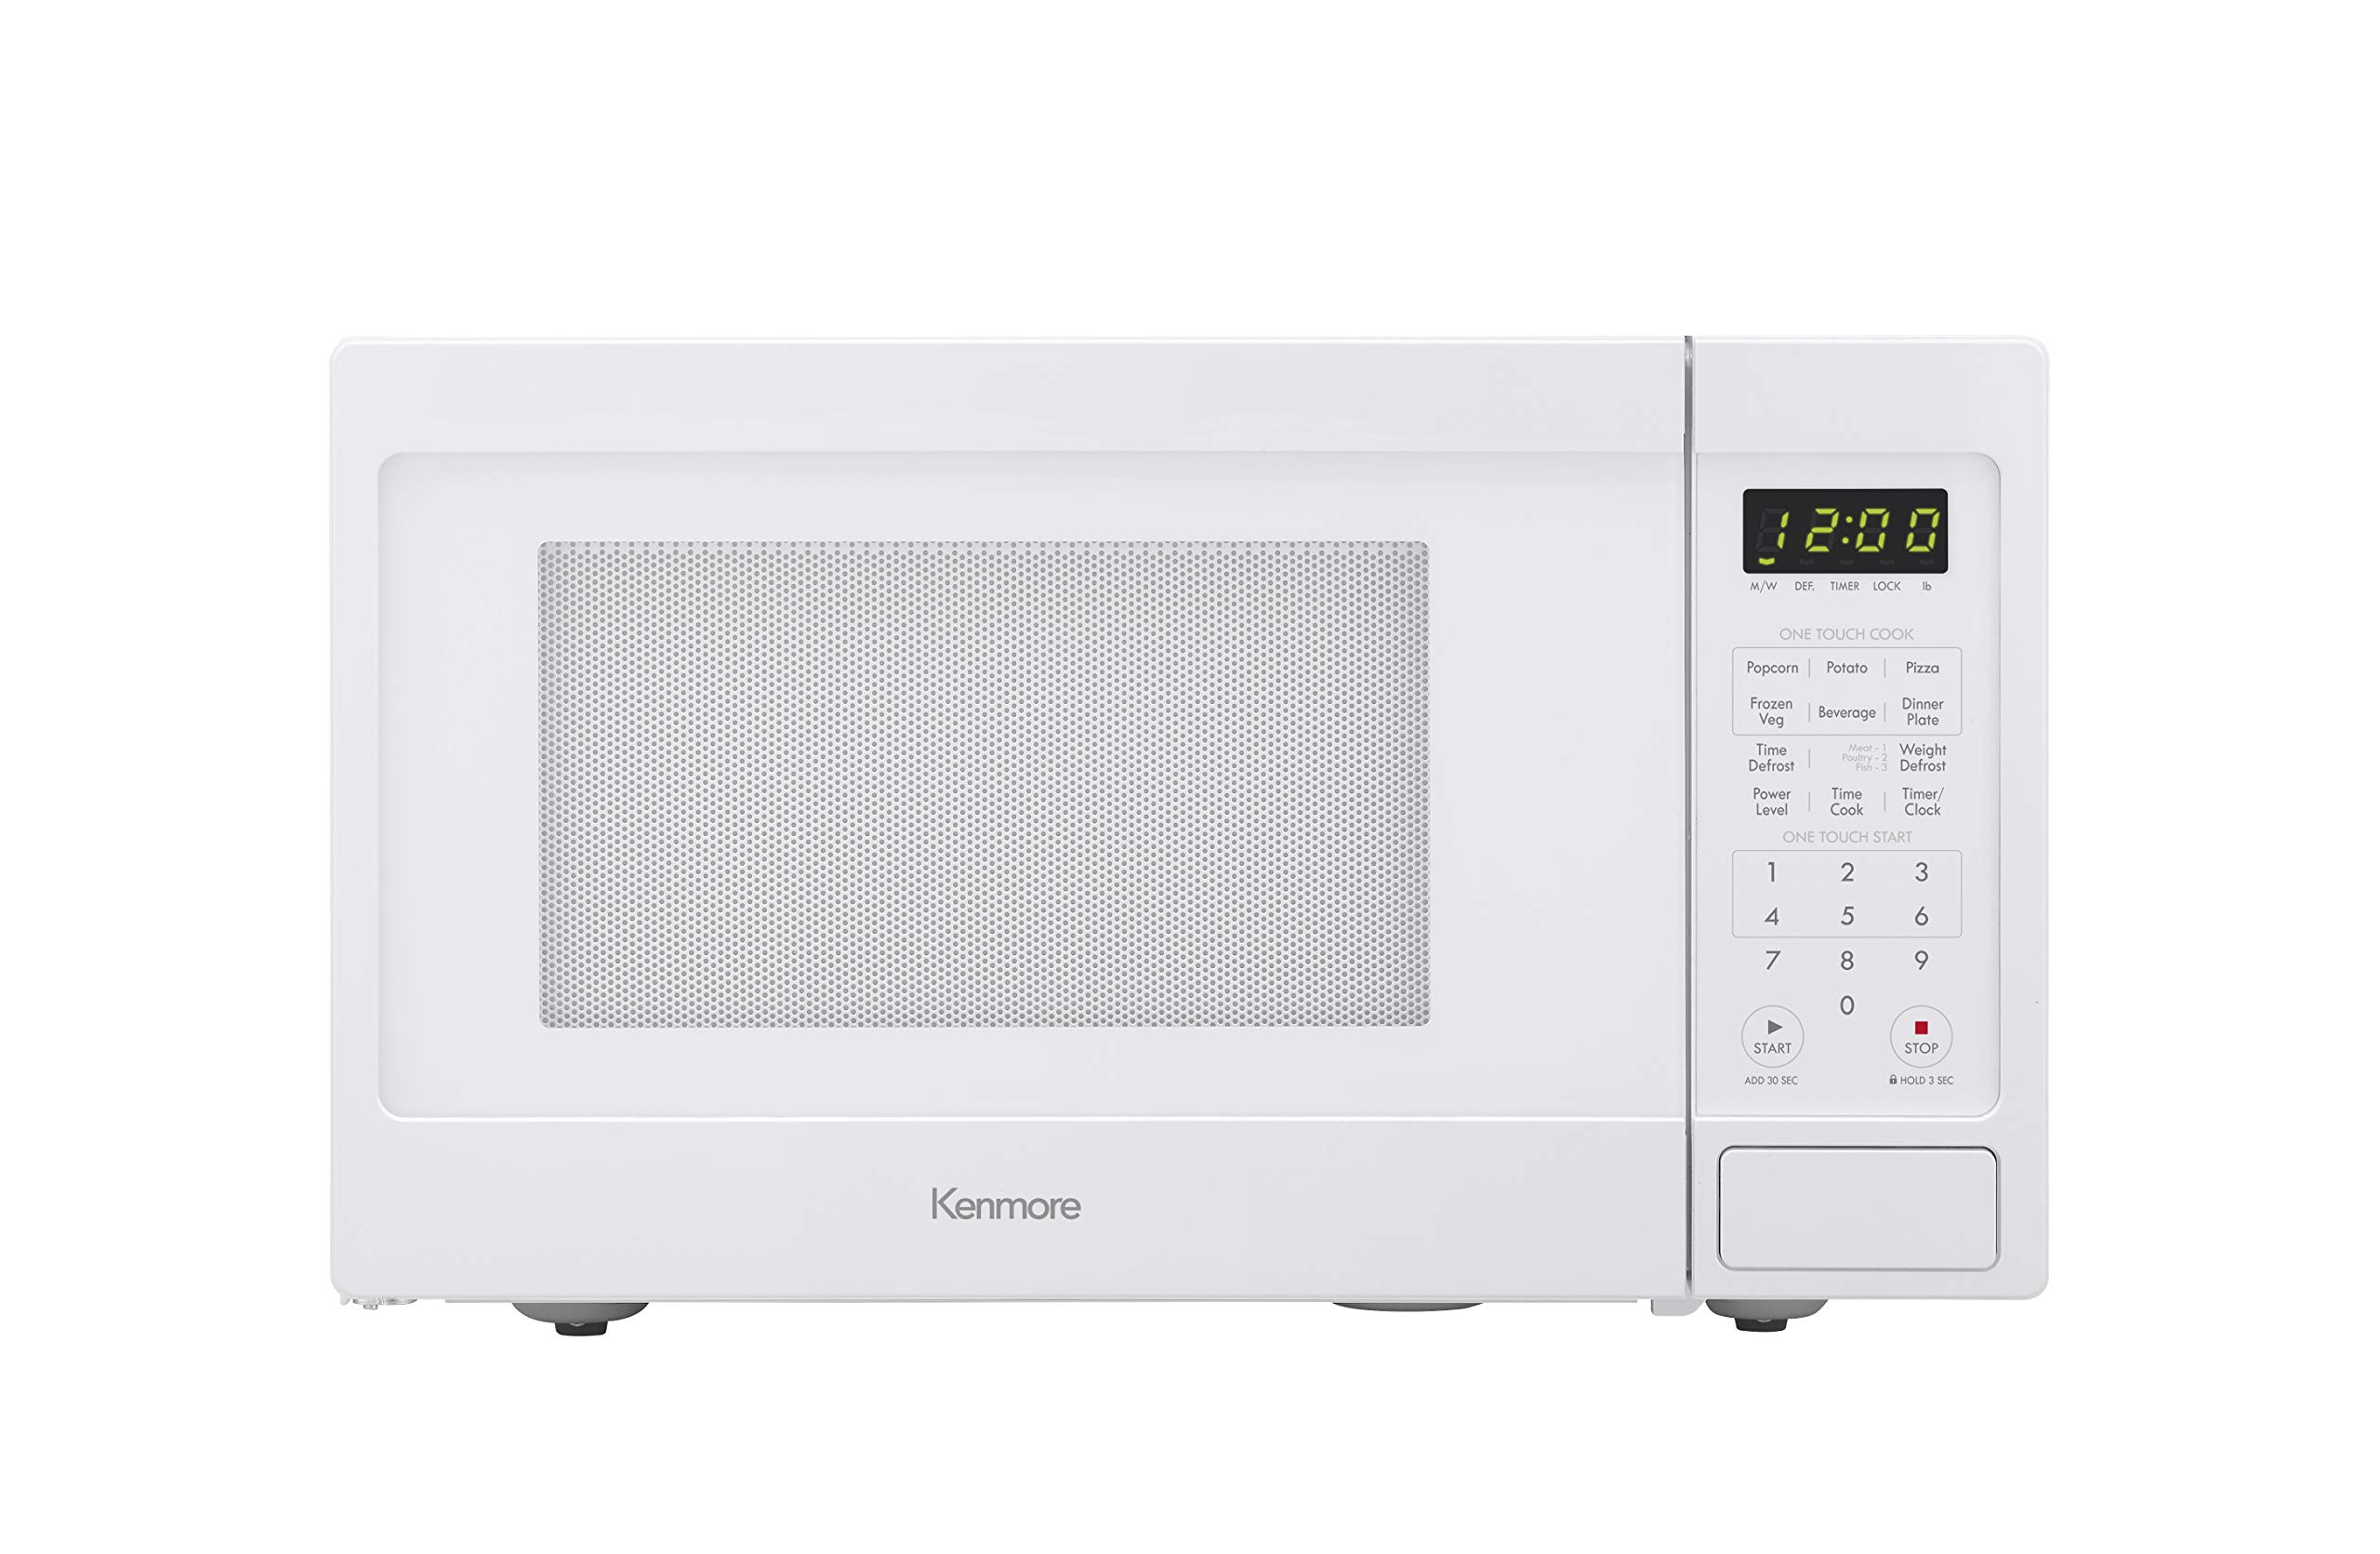 Kenmore White 70912 Countertop Microwave, 0.9 cu. ft by Kenmore